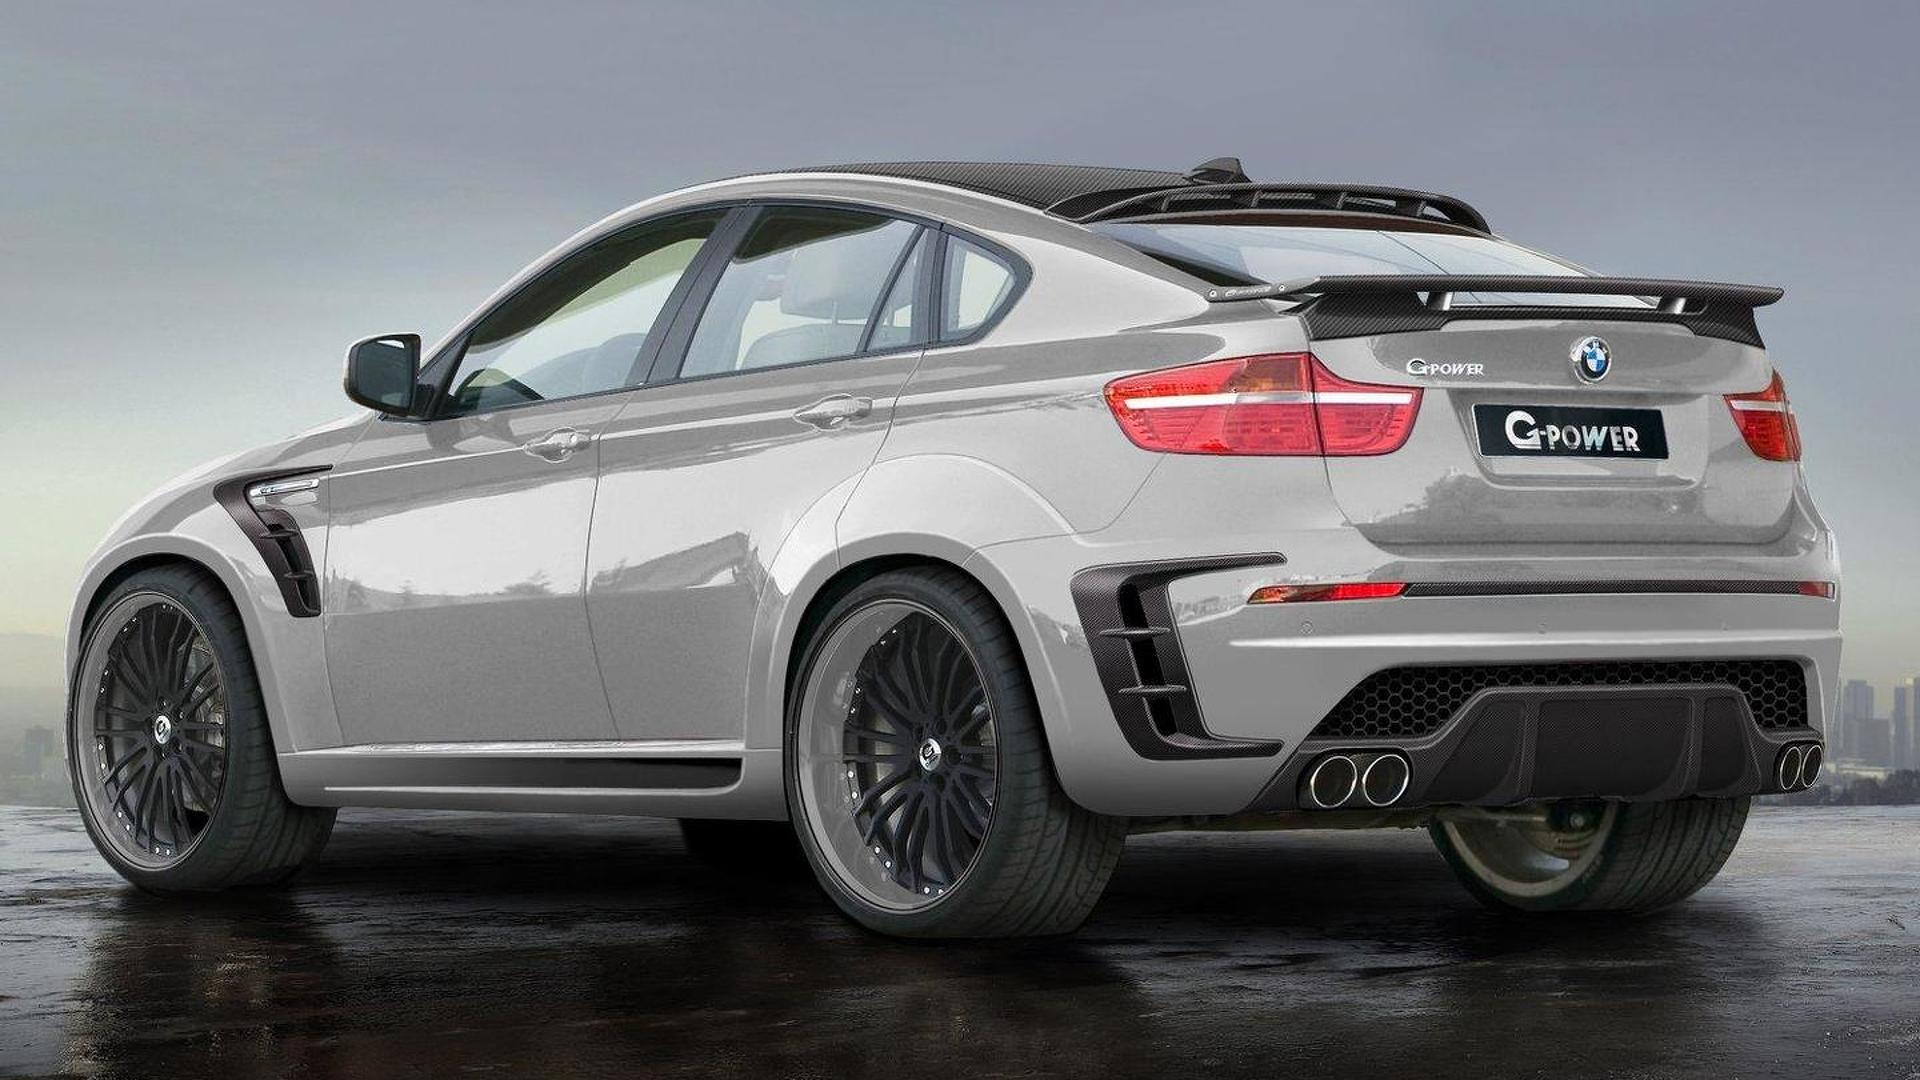 G Power X6 Typhoon Rs Ultimate V10 Packs 900hp